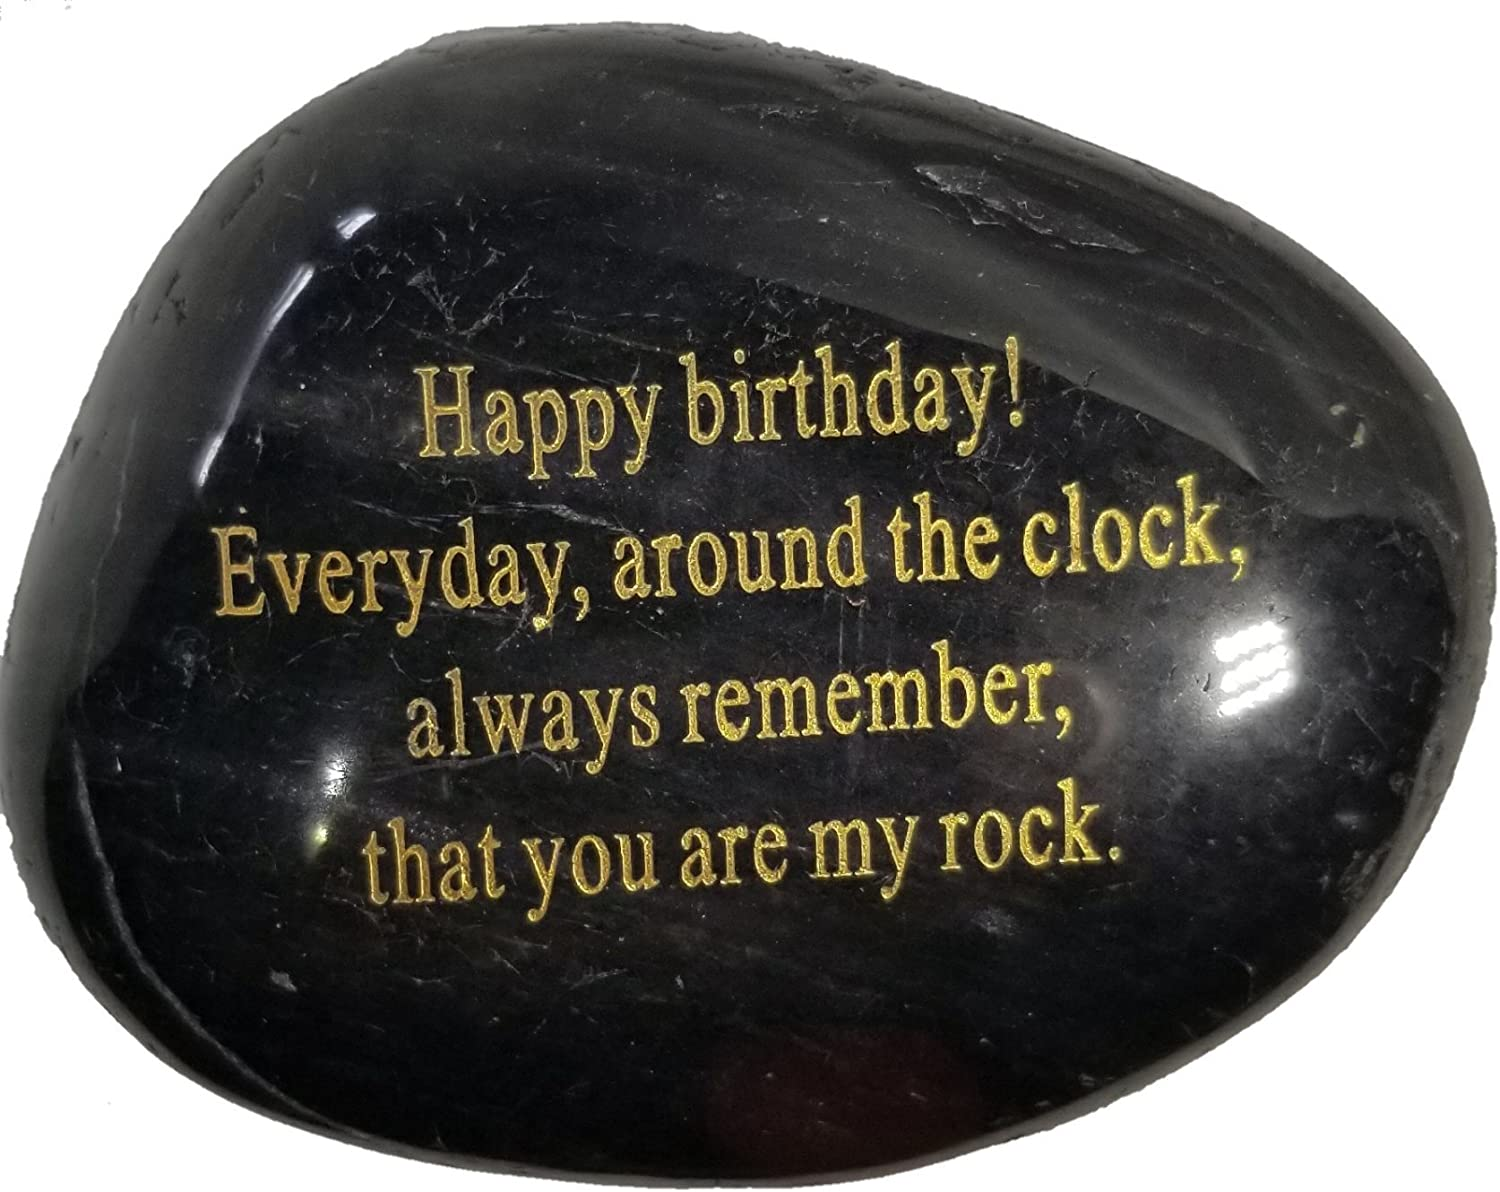 "Adult Birthday Gift,""Happy Birthday! Everyday, around the clock, always remember, that you are my rock."" Engraved Rock."